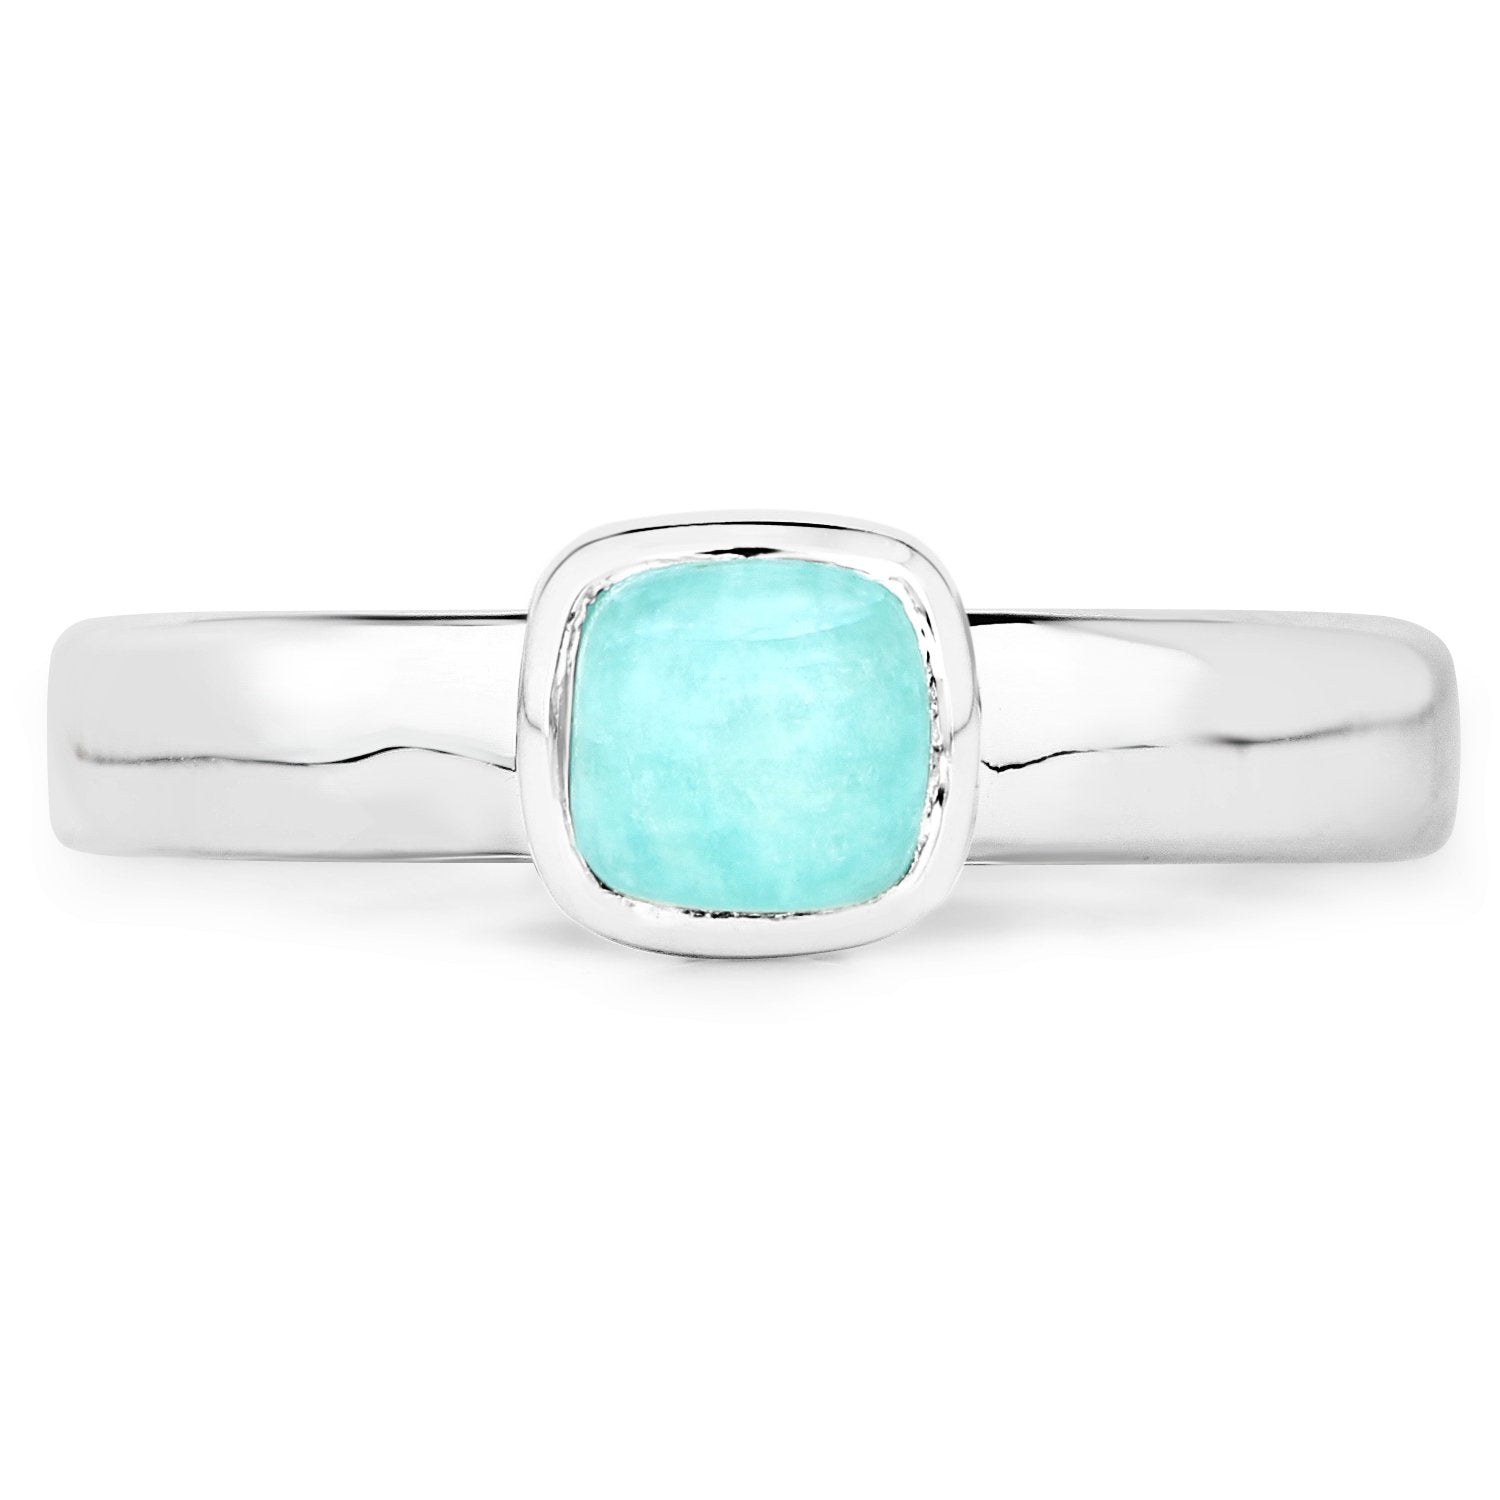 LoveHuang 0.69 Carats Genuine Amazonite Cushion Stacking Ring Solid .925 Sterling Silver With Rhodium Plating